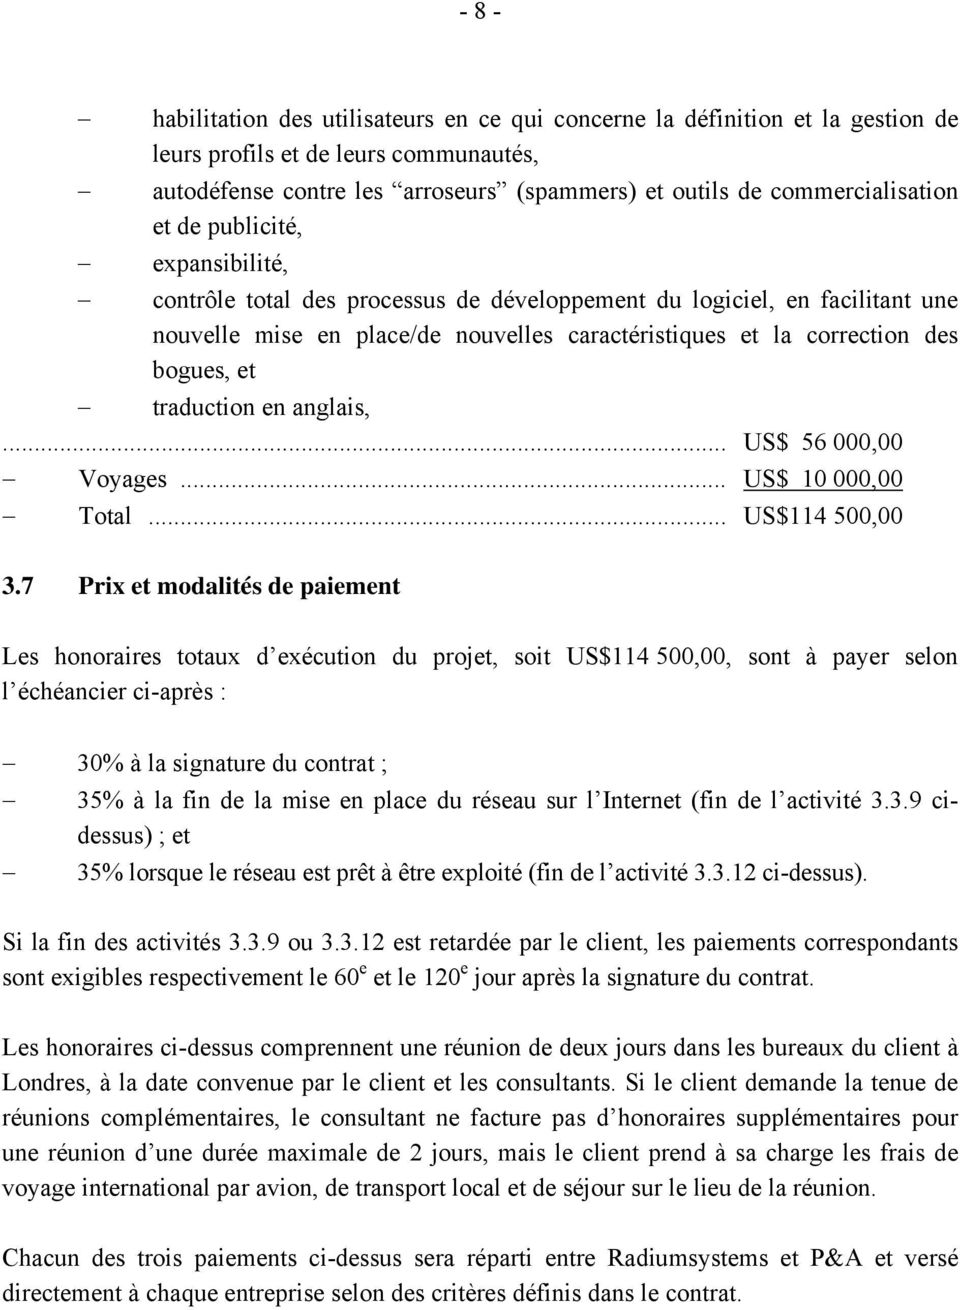 traduction en anglais,... US$ 56 000,00 Voyages... US$ 10 000,00 Total... US$114 500,00 3.